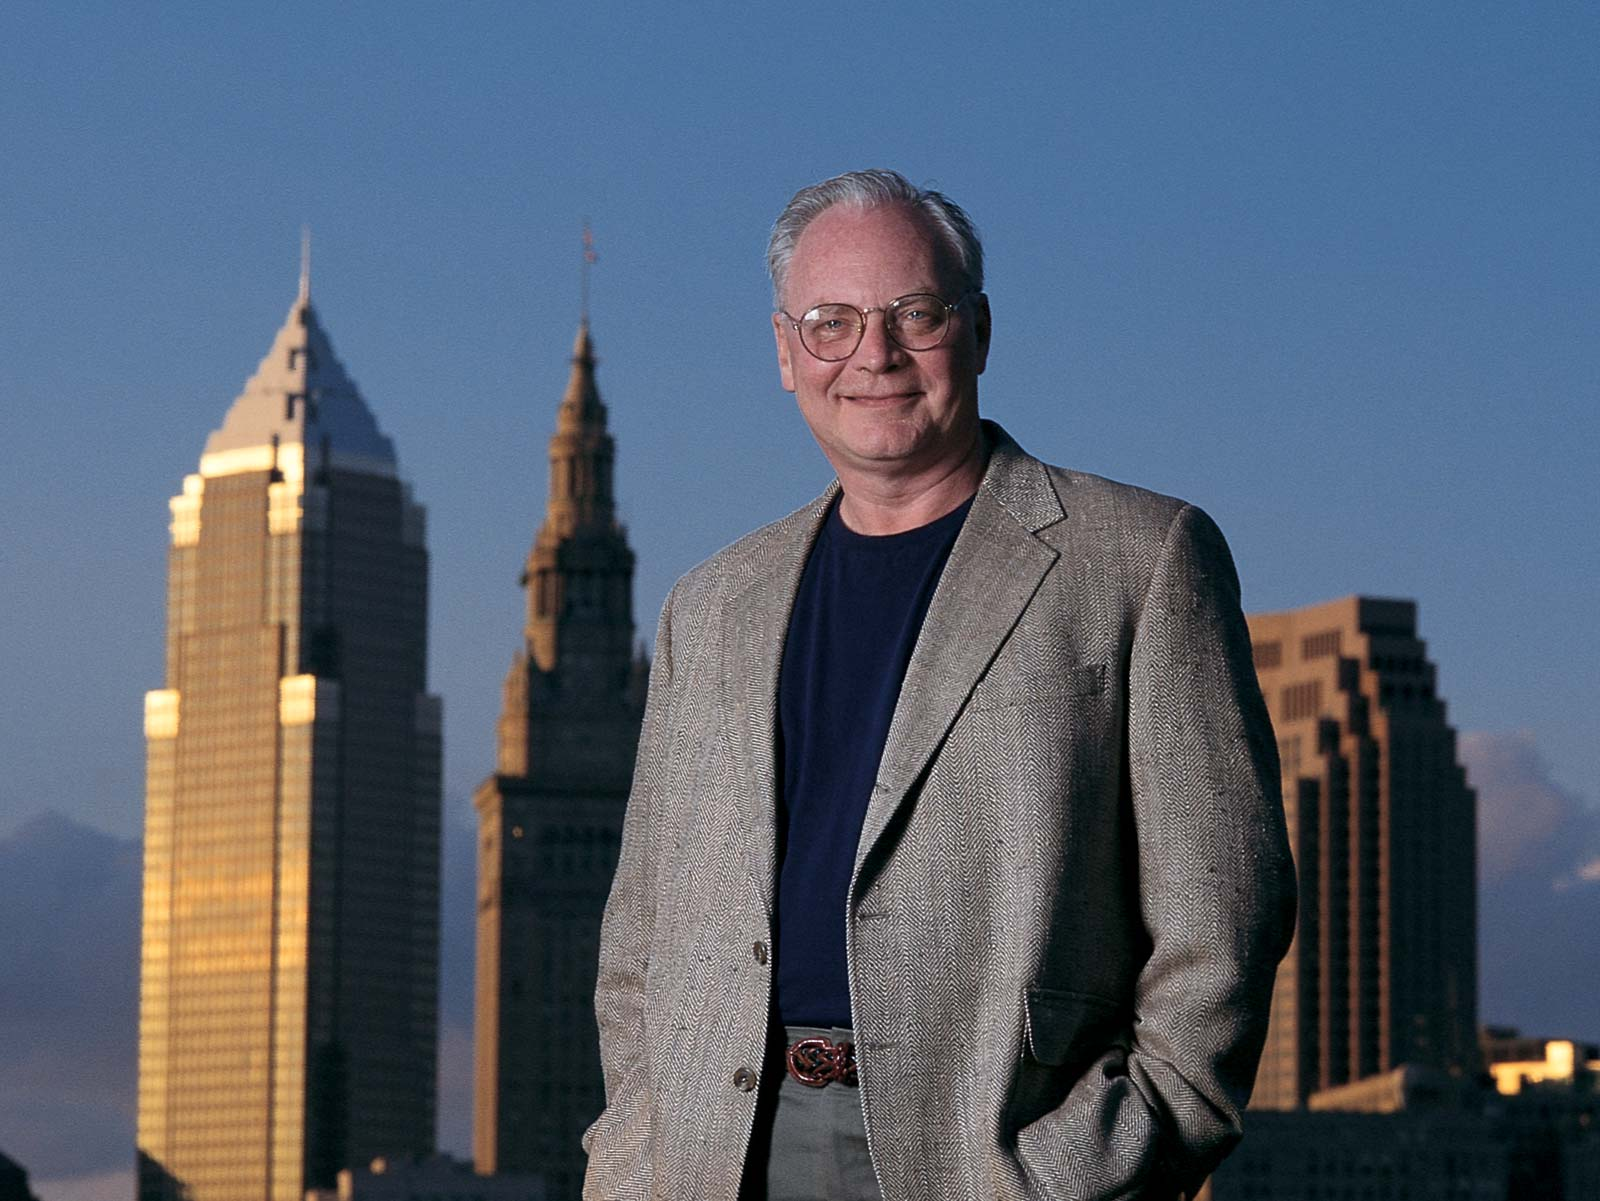 Dick Feagler standing in front of the Cleveland skyline